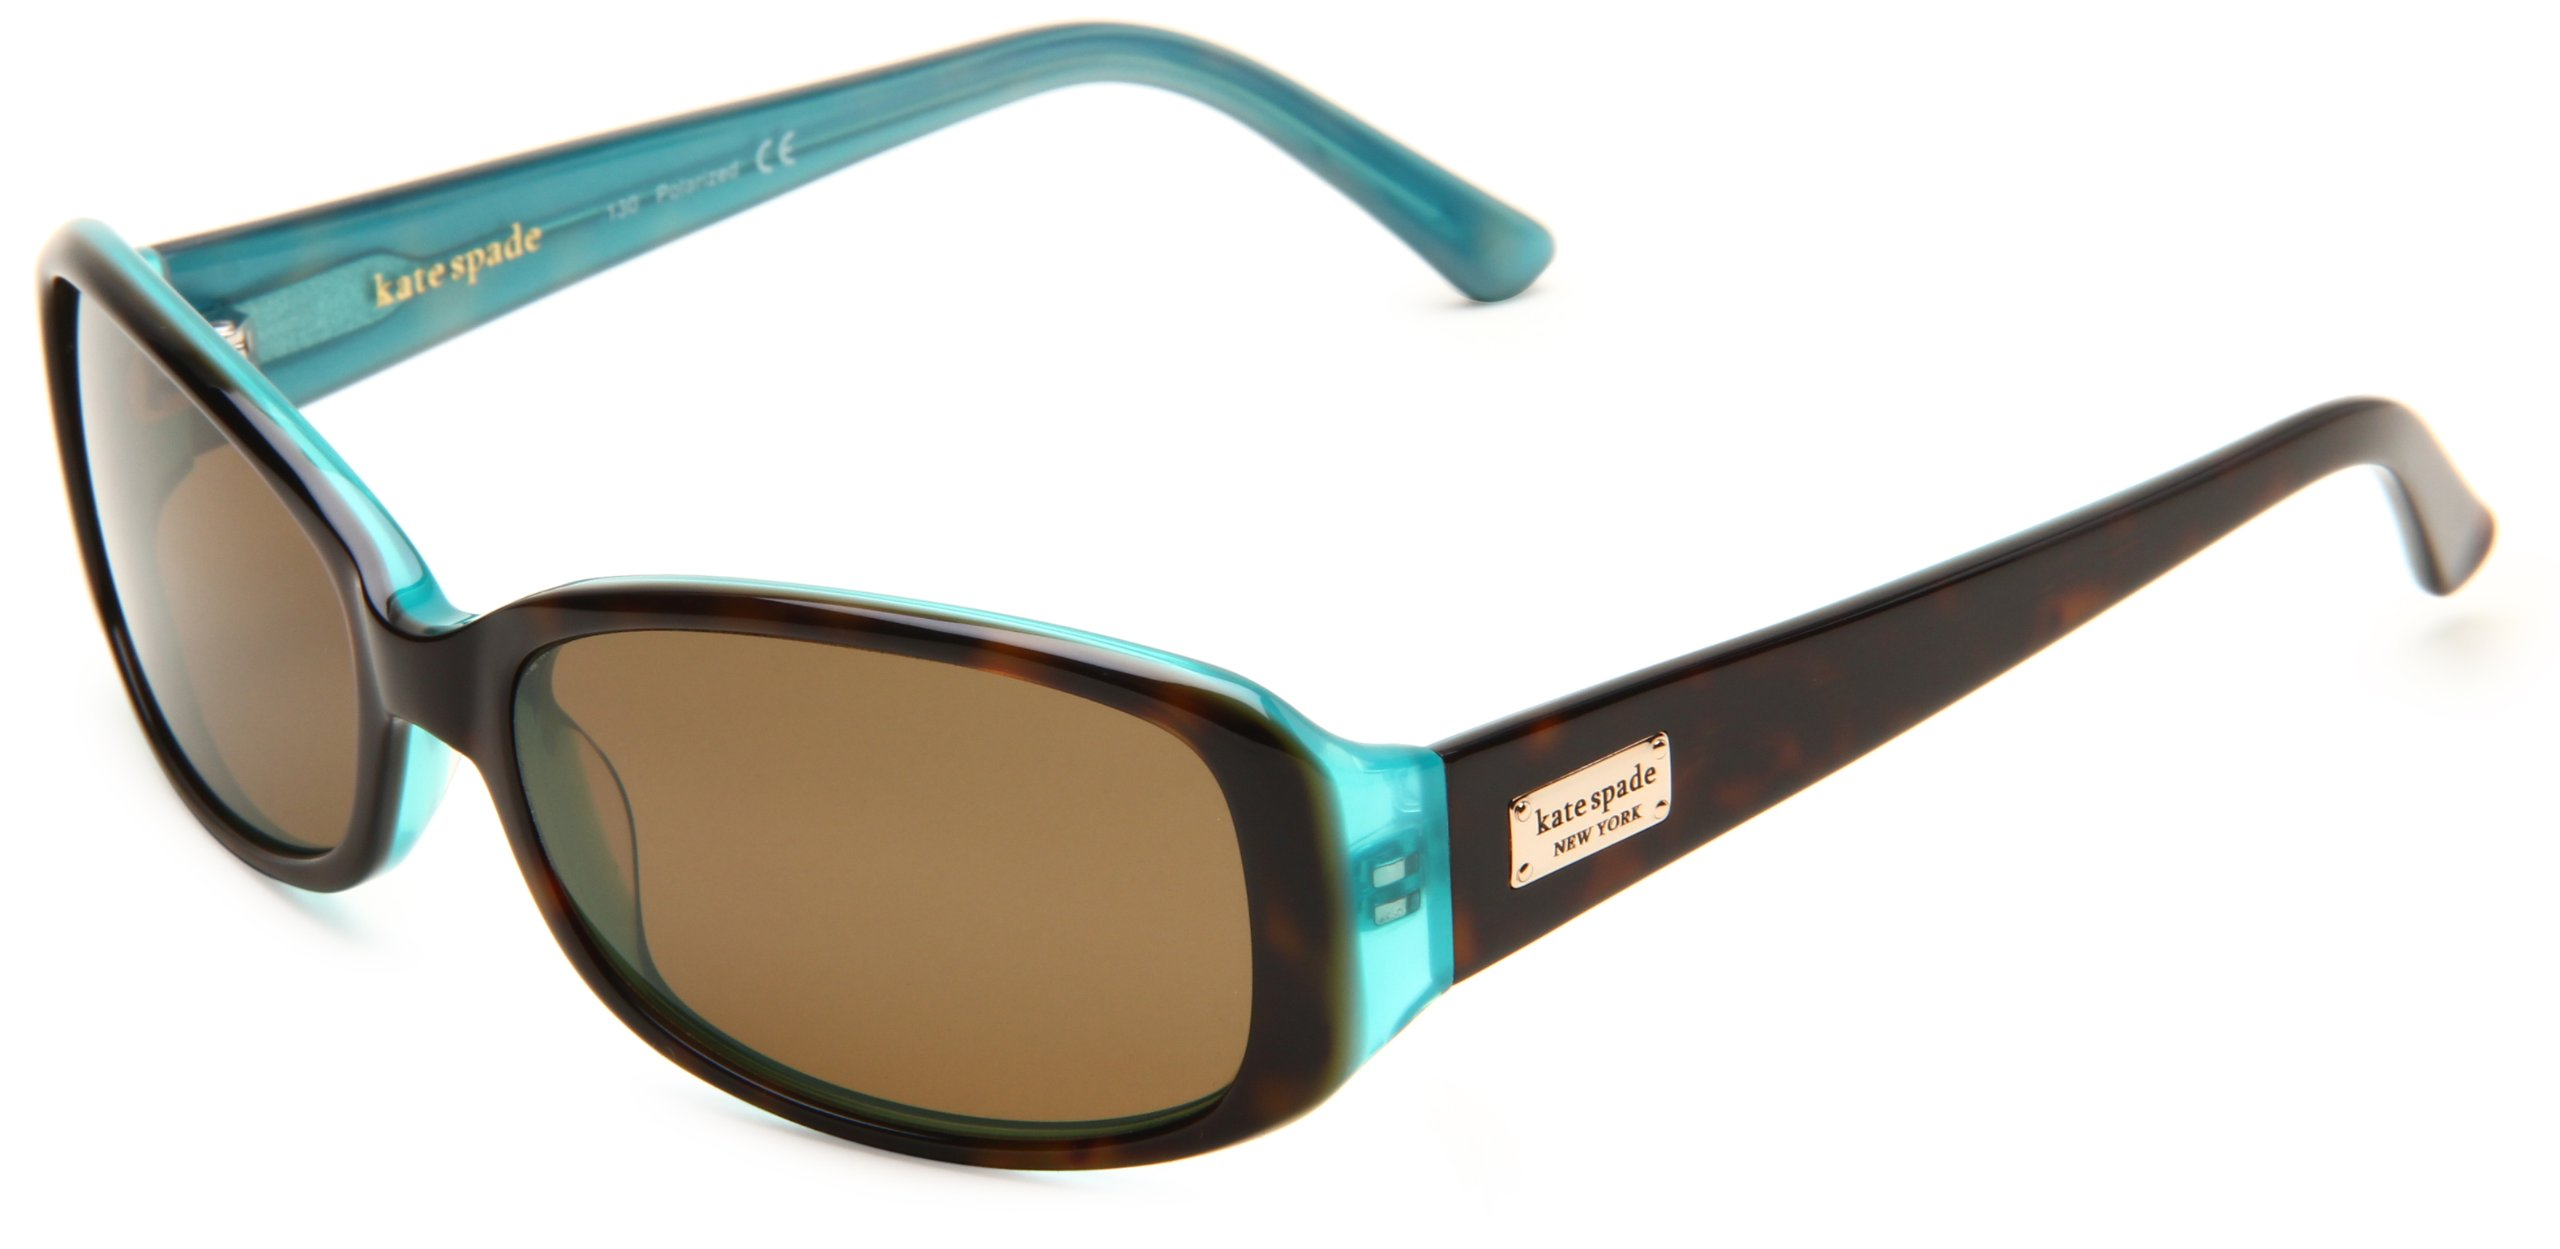 Kate Spade Women's Paxton/S Rectangular Sunglasses,Aqua Tortoise Frame/Brown Polarized Lens,one size by Kate Spade New York (Image #1)